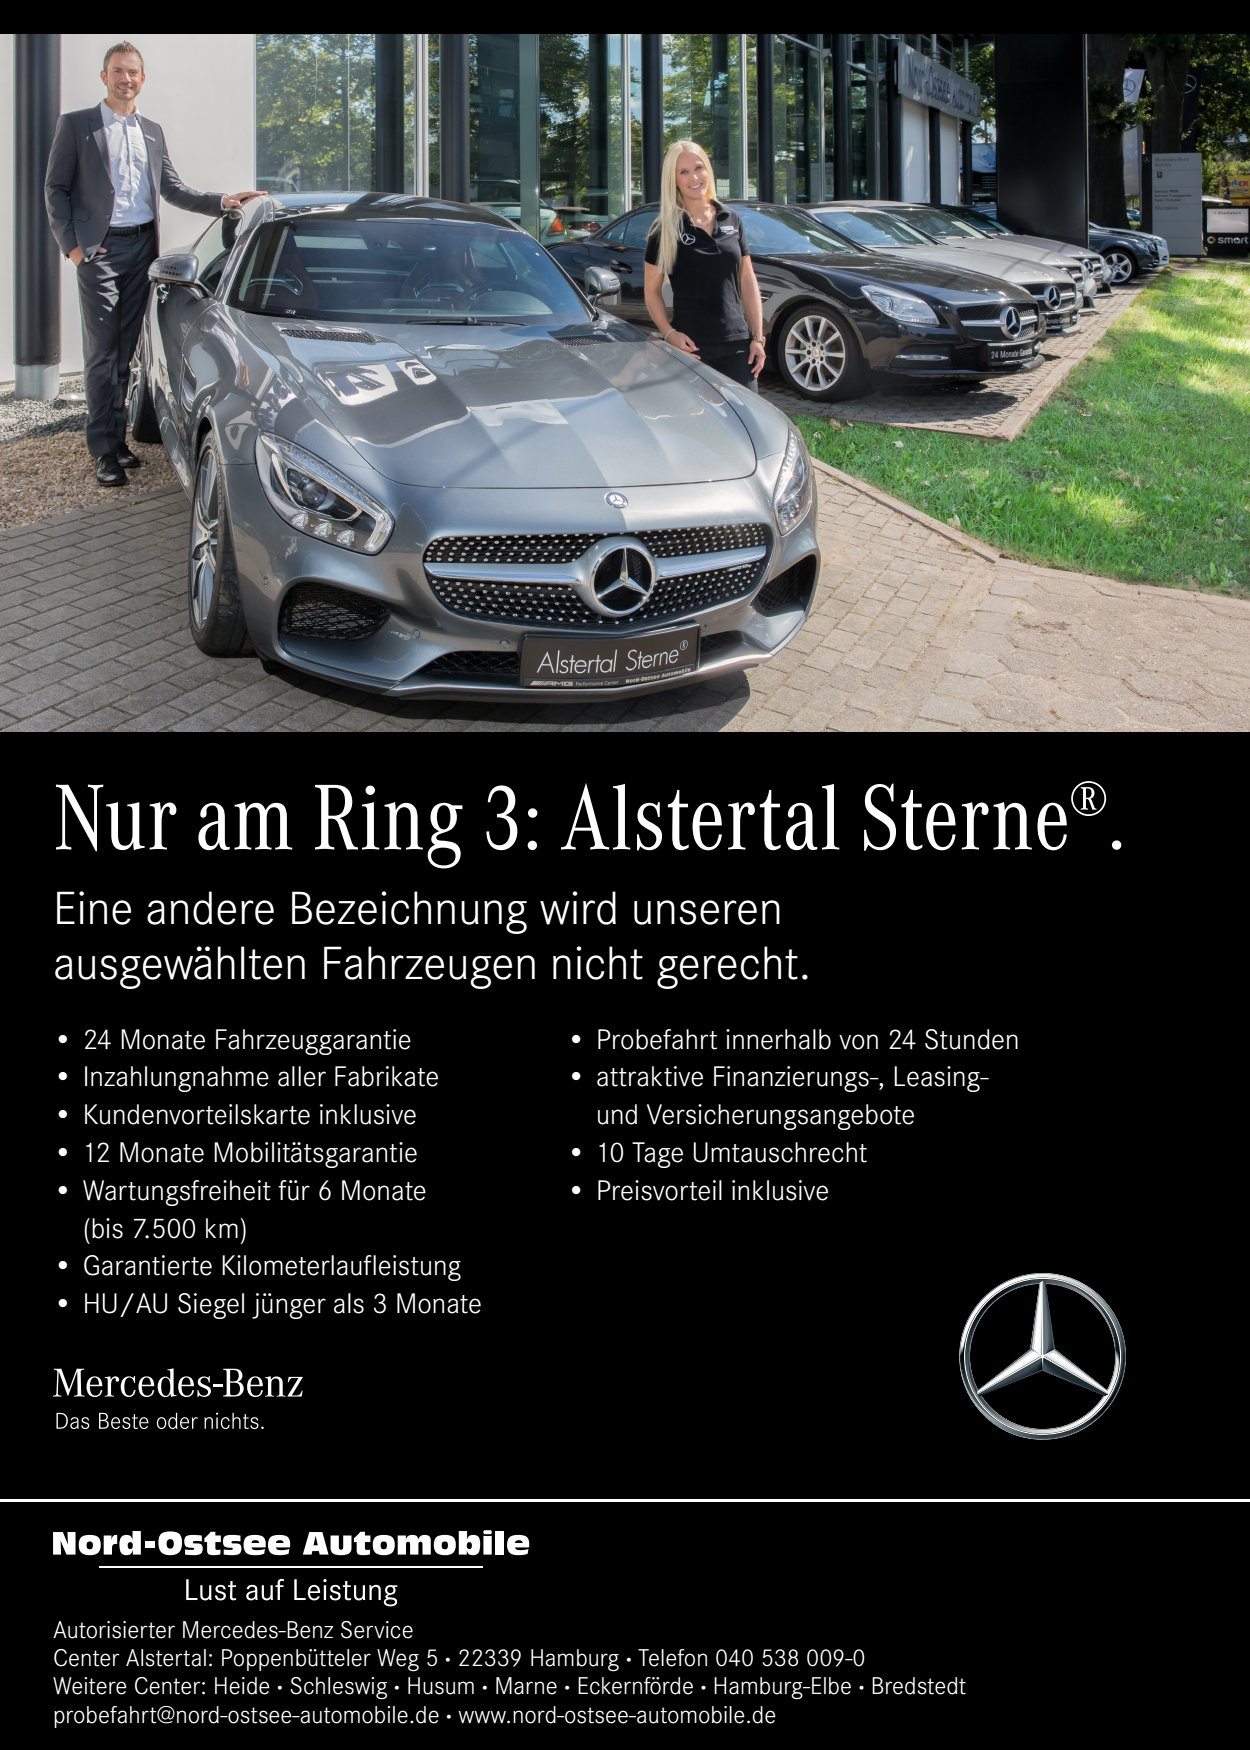 nord ostsee automobile marne